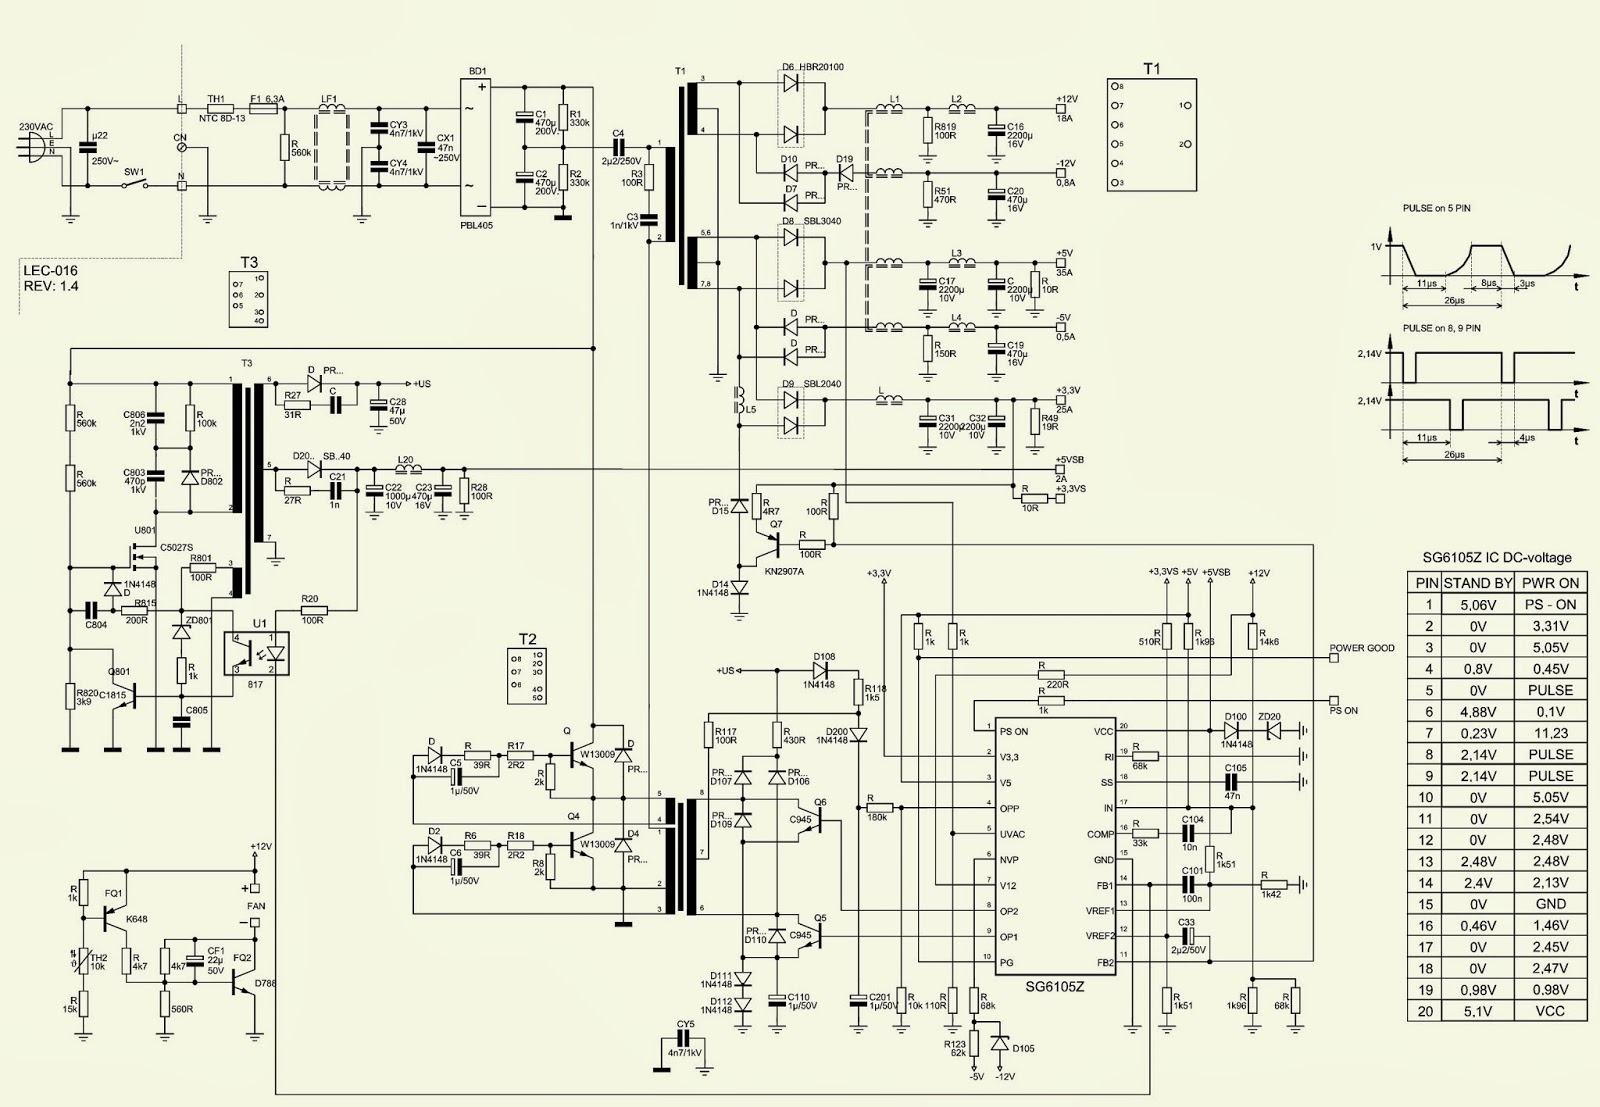 400 Watts Atx Power Supply P4 Desktop Computers Schematic 12v Wiring